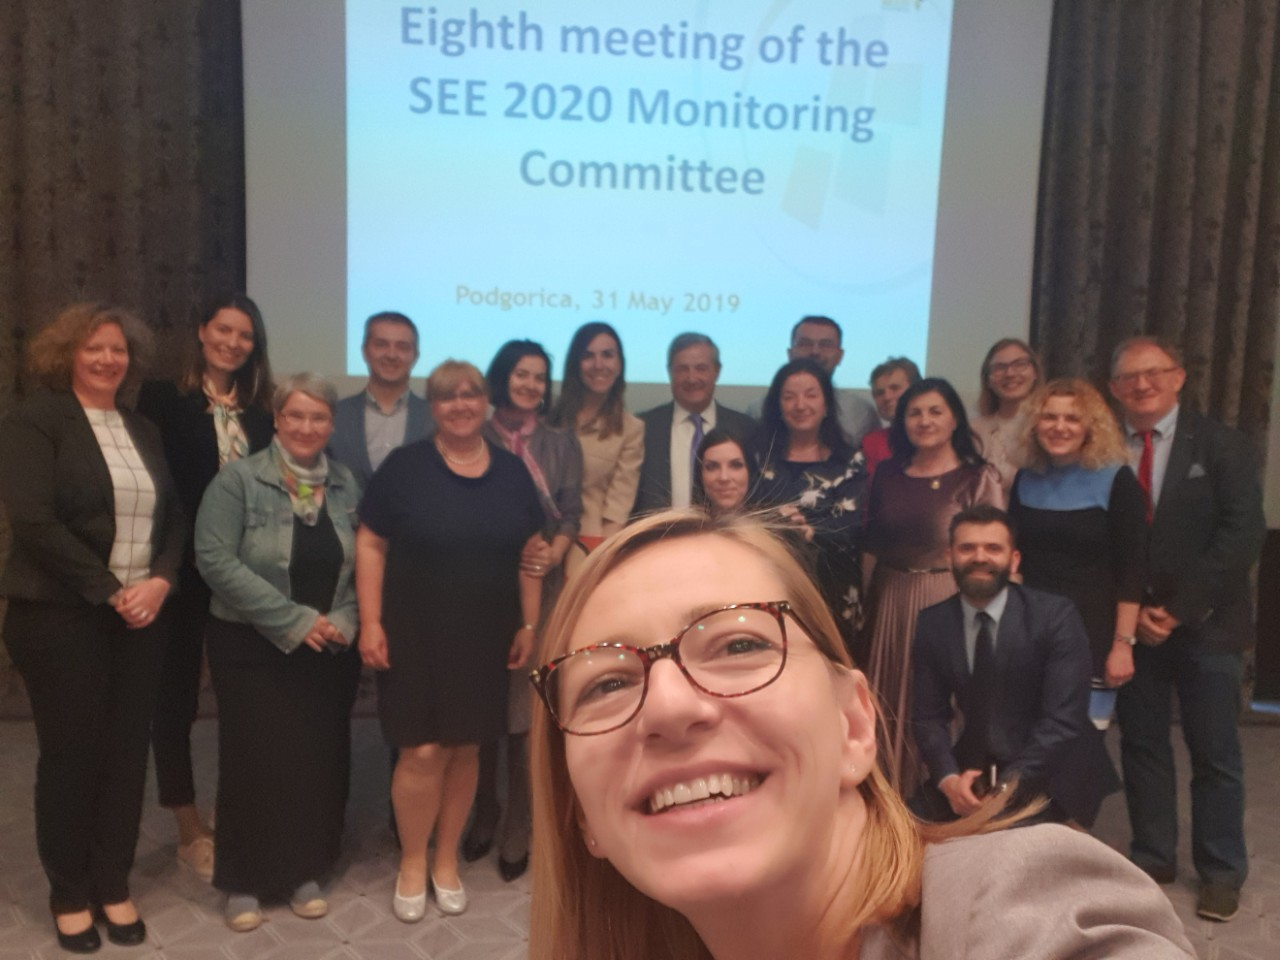 Participants of the 8th meeting of the SEE 2020 Strategy Monitoring Committee, in Podgorica on 31 May 2019 (Photo: RCC/Maja Pinjo Talevska)